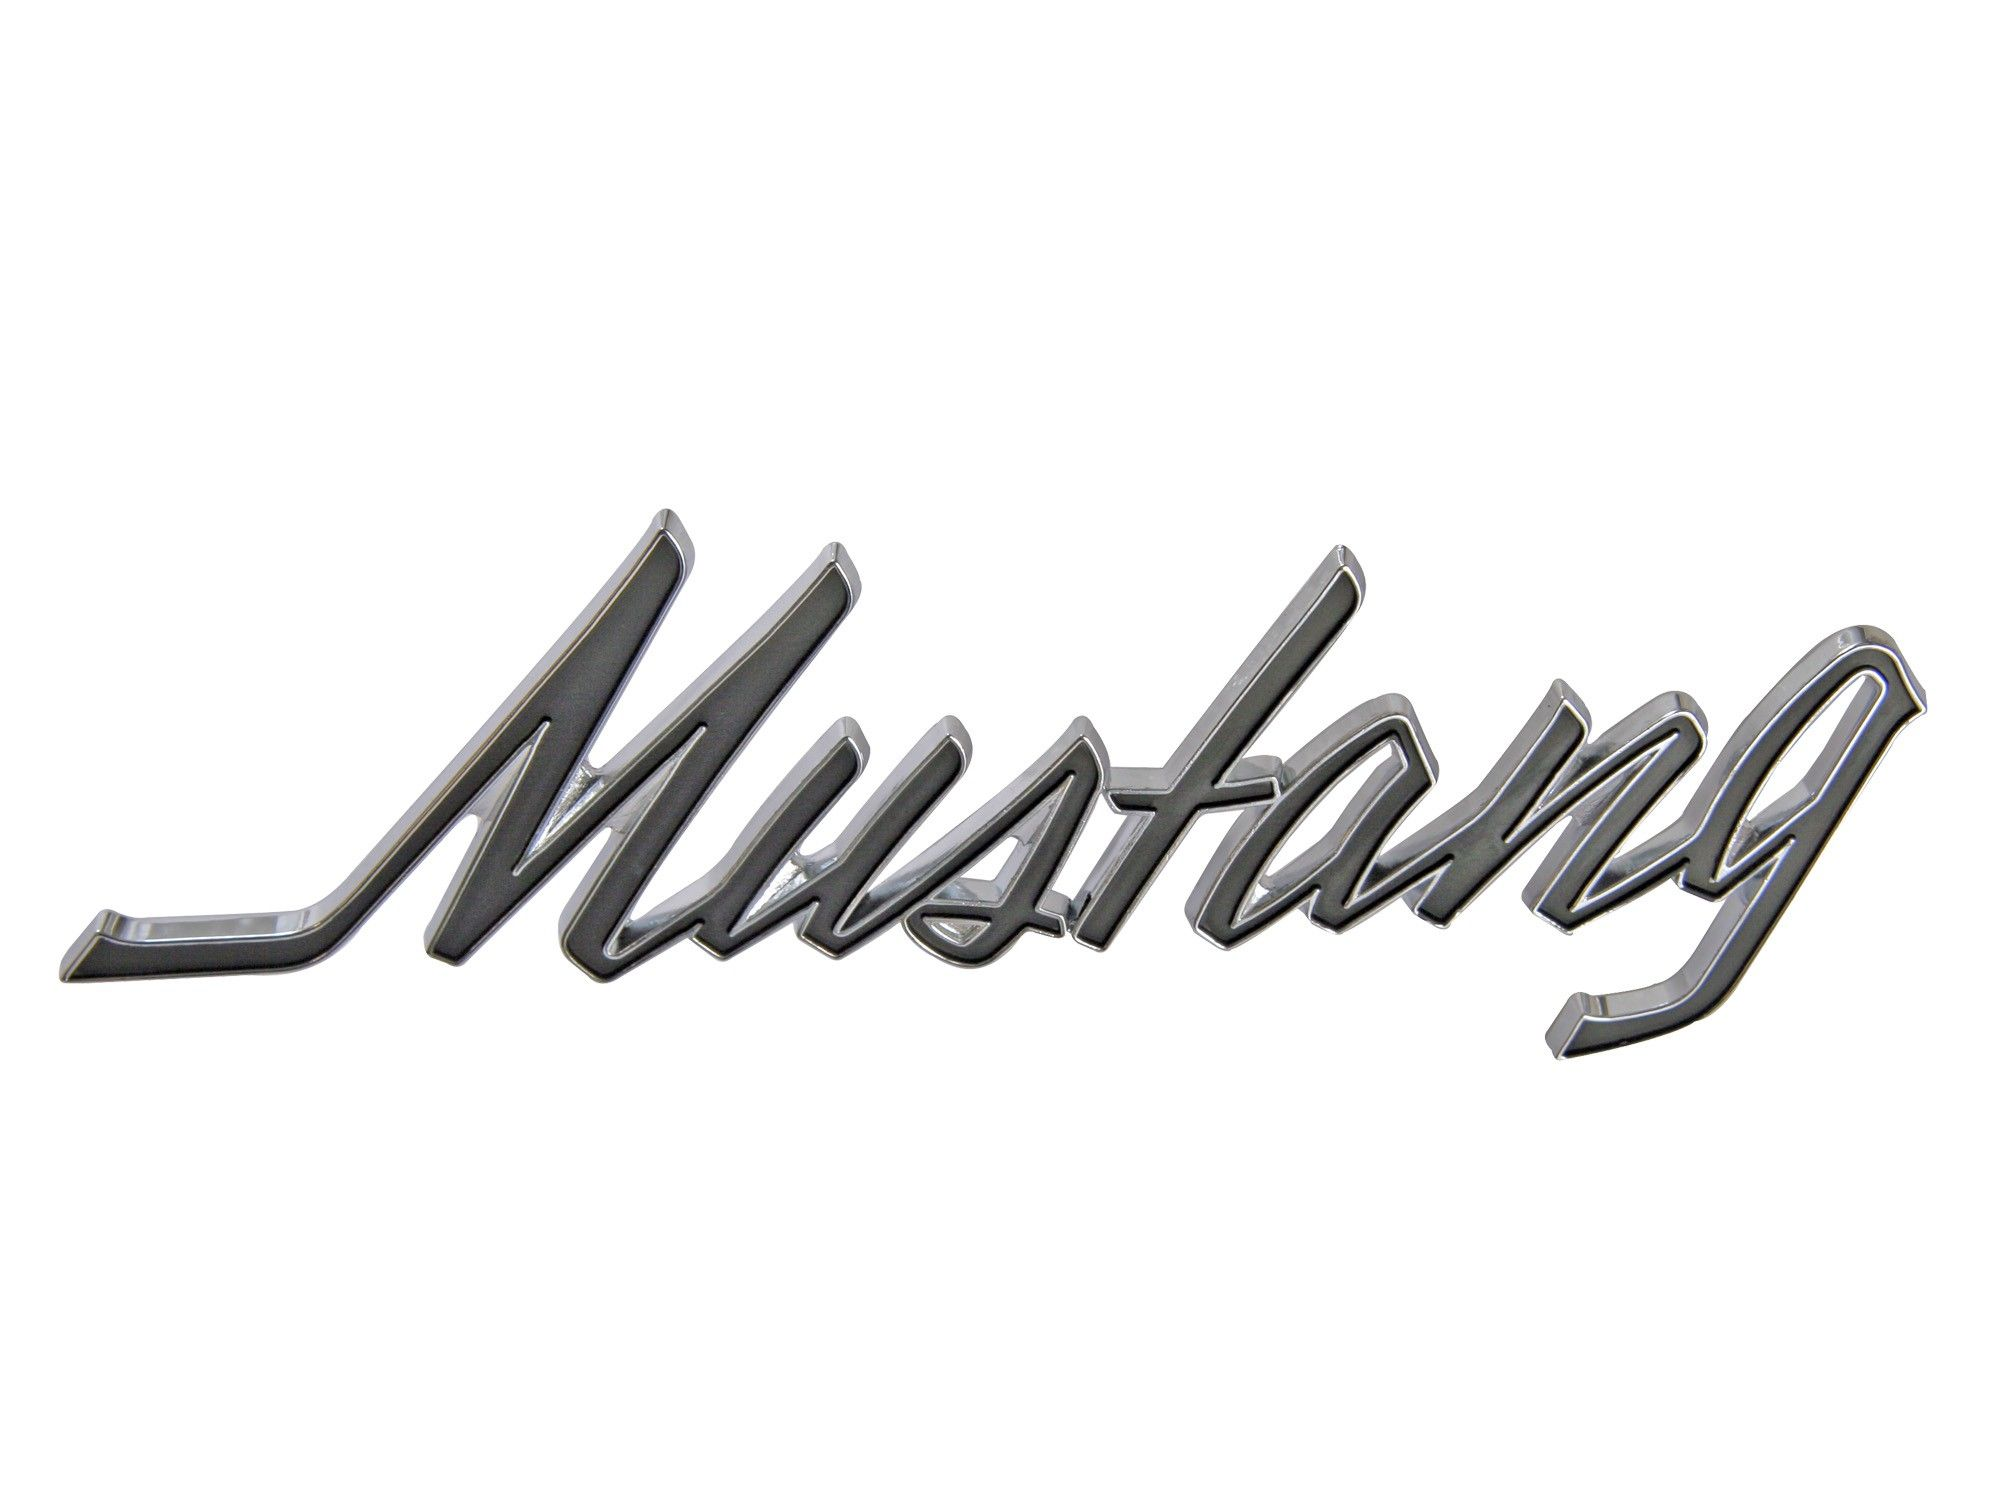 Mustang Word Tatoo Tattoo Designs Pinterest Mustangs